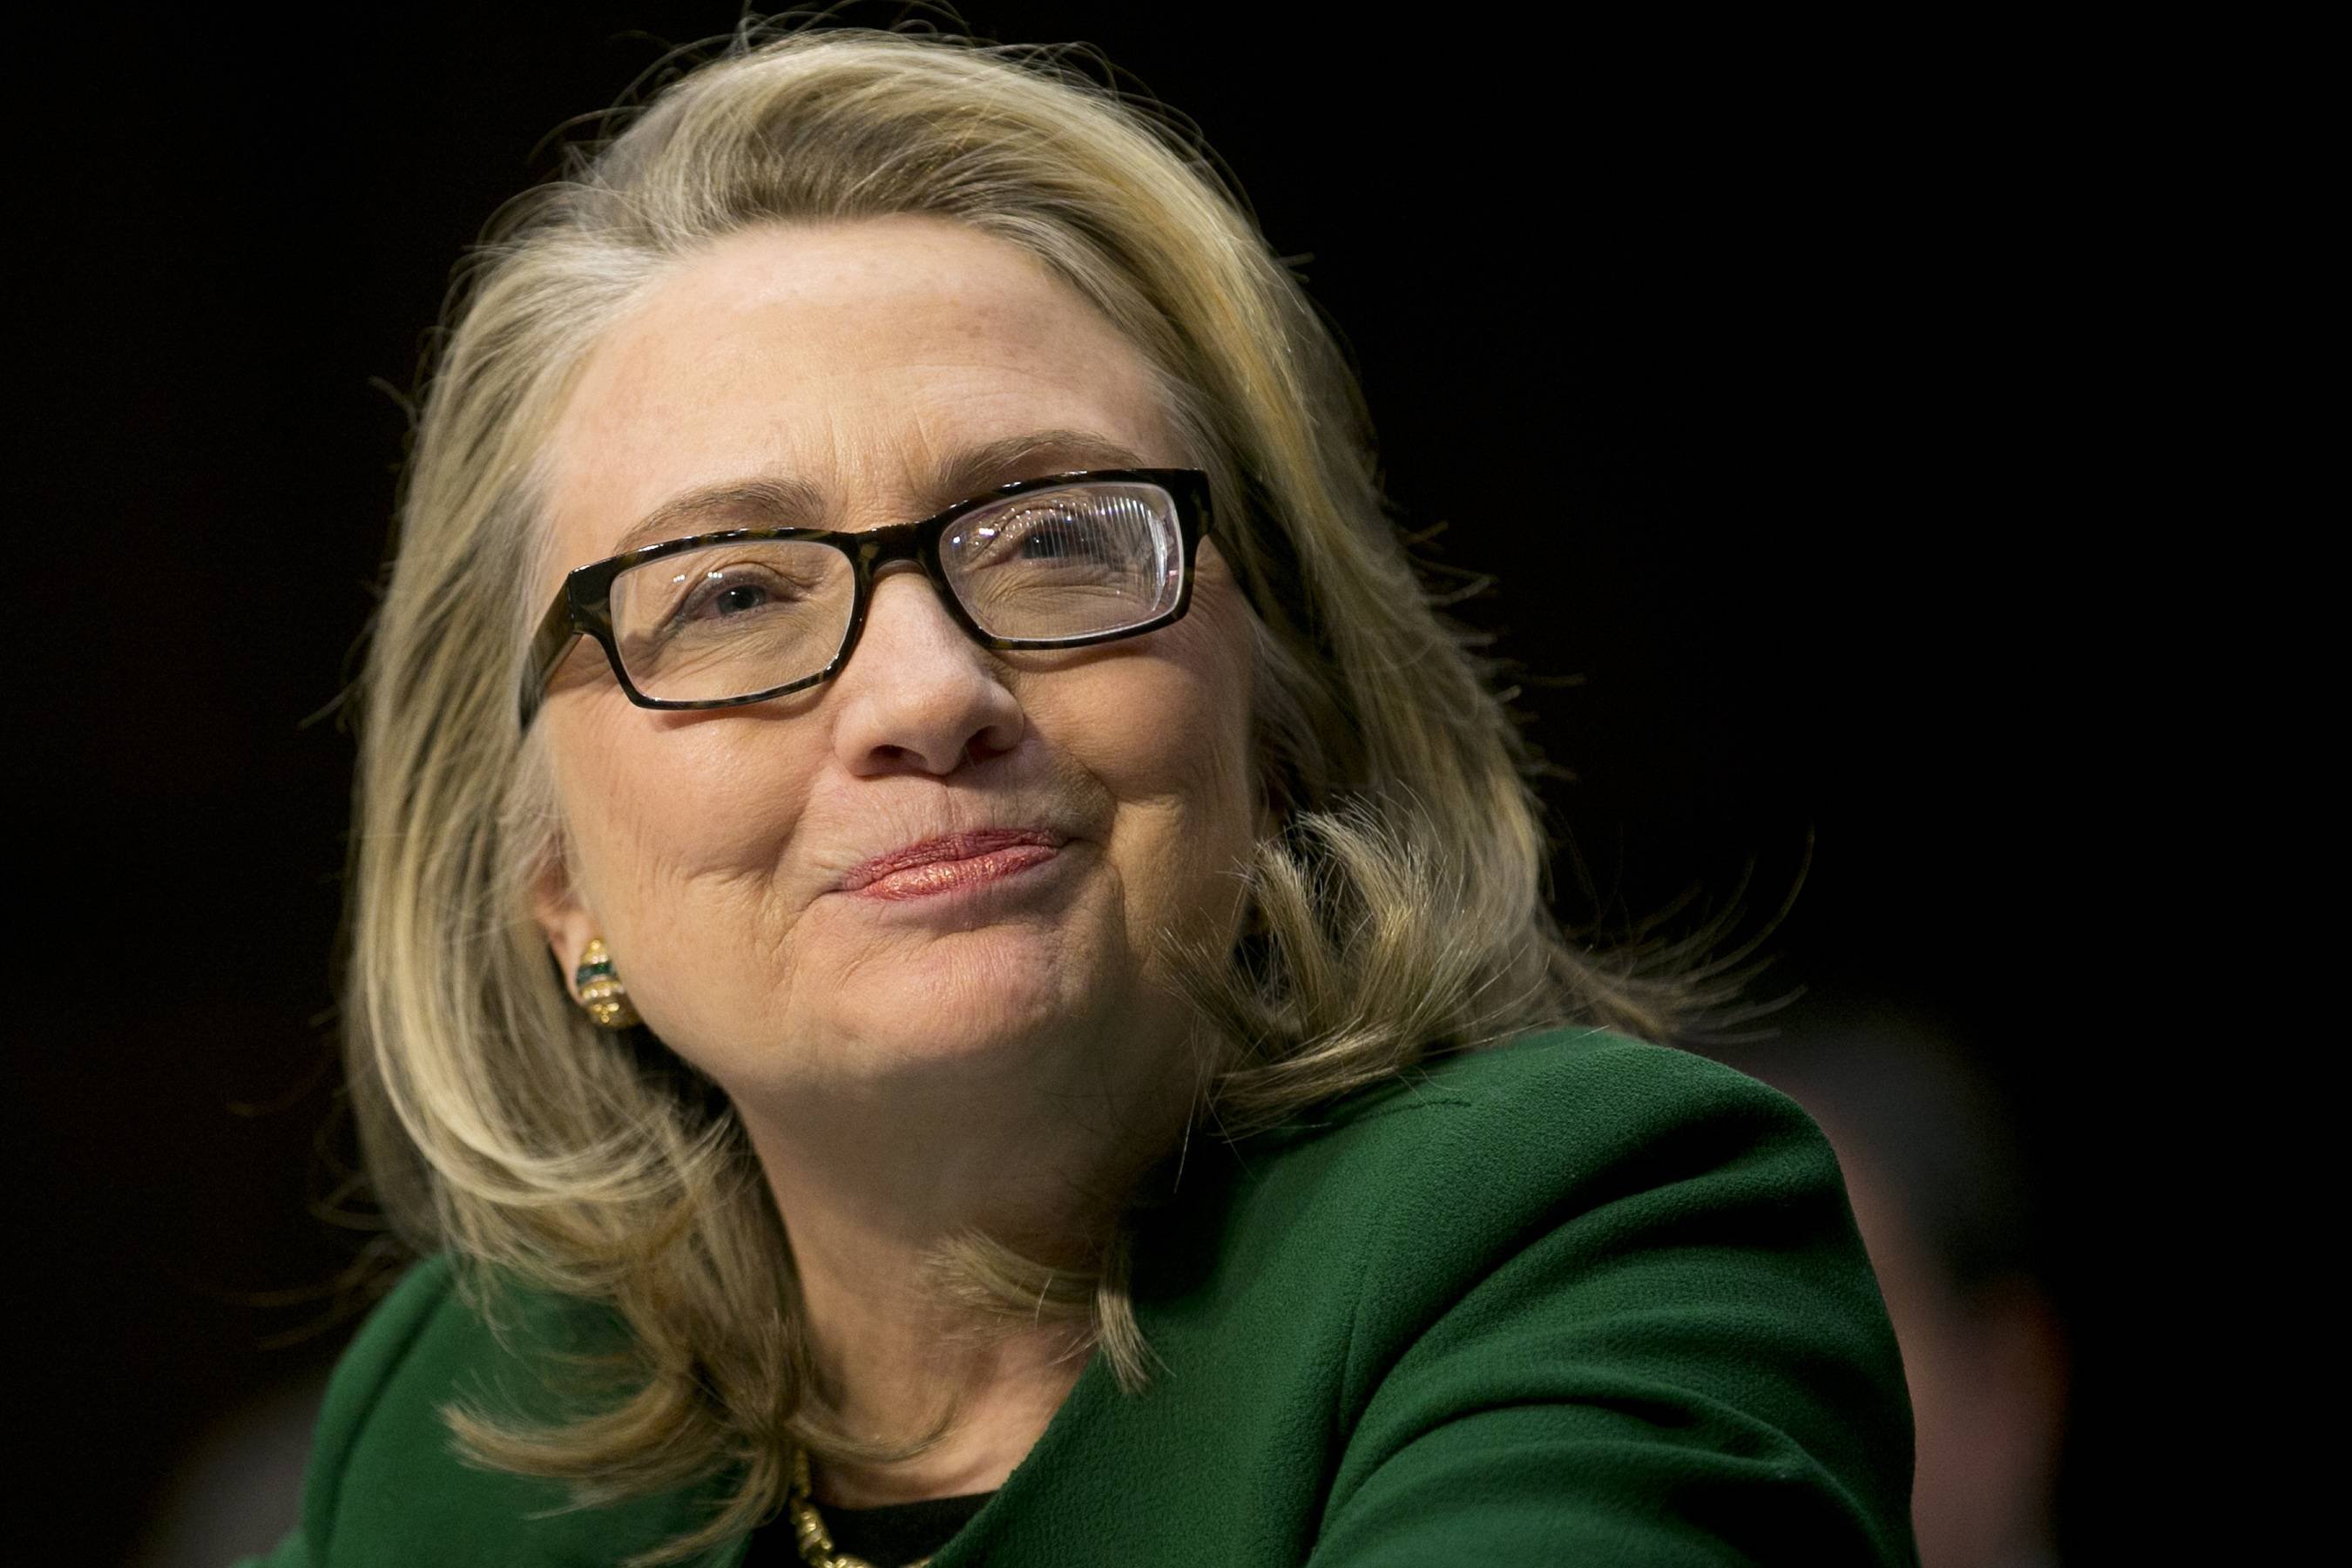 Former Secretary of State Hillary Clinton may run for the White House in 2016.